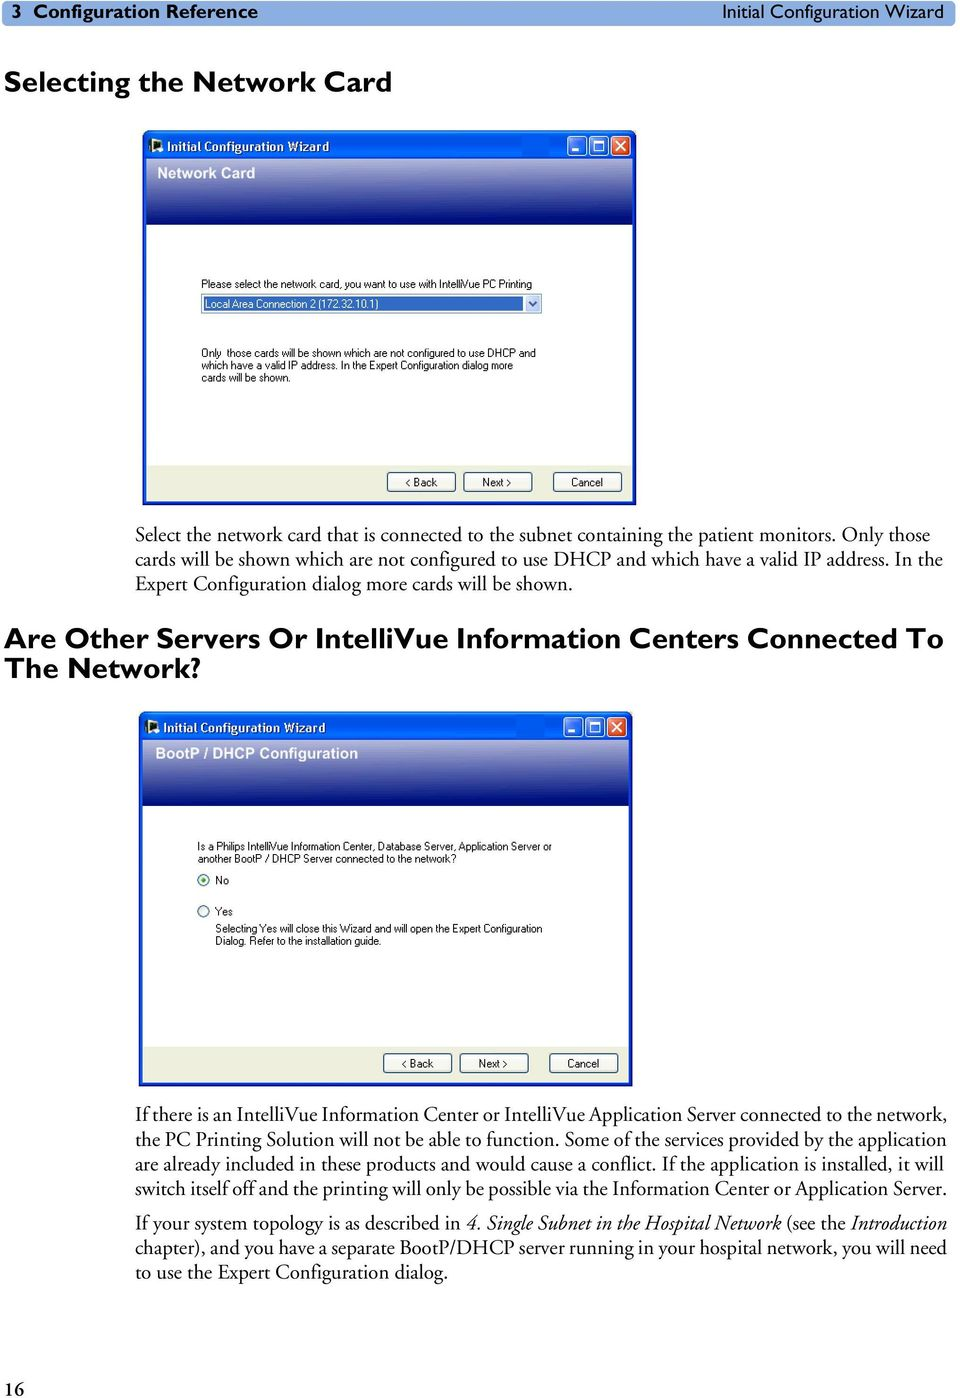 Are Other Servers Or IntelliVue Information Centers Connected To The Network?